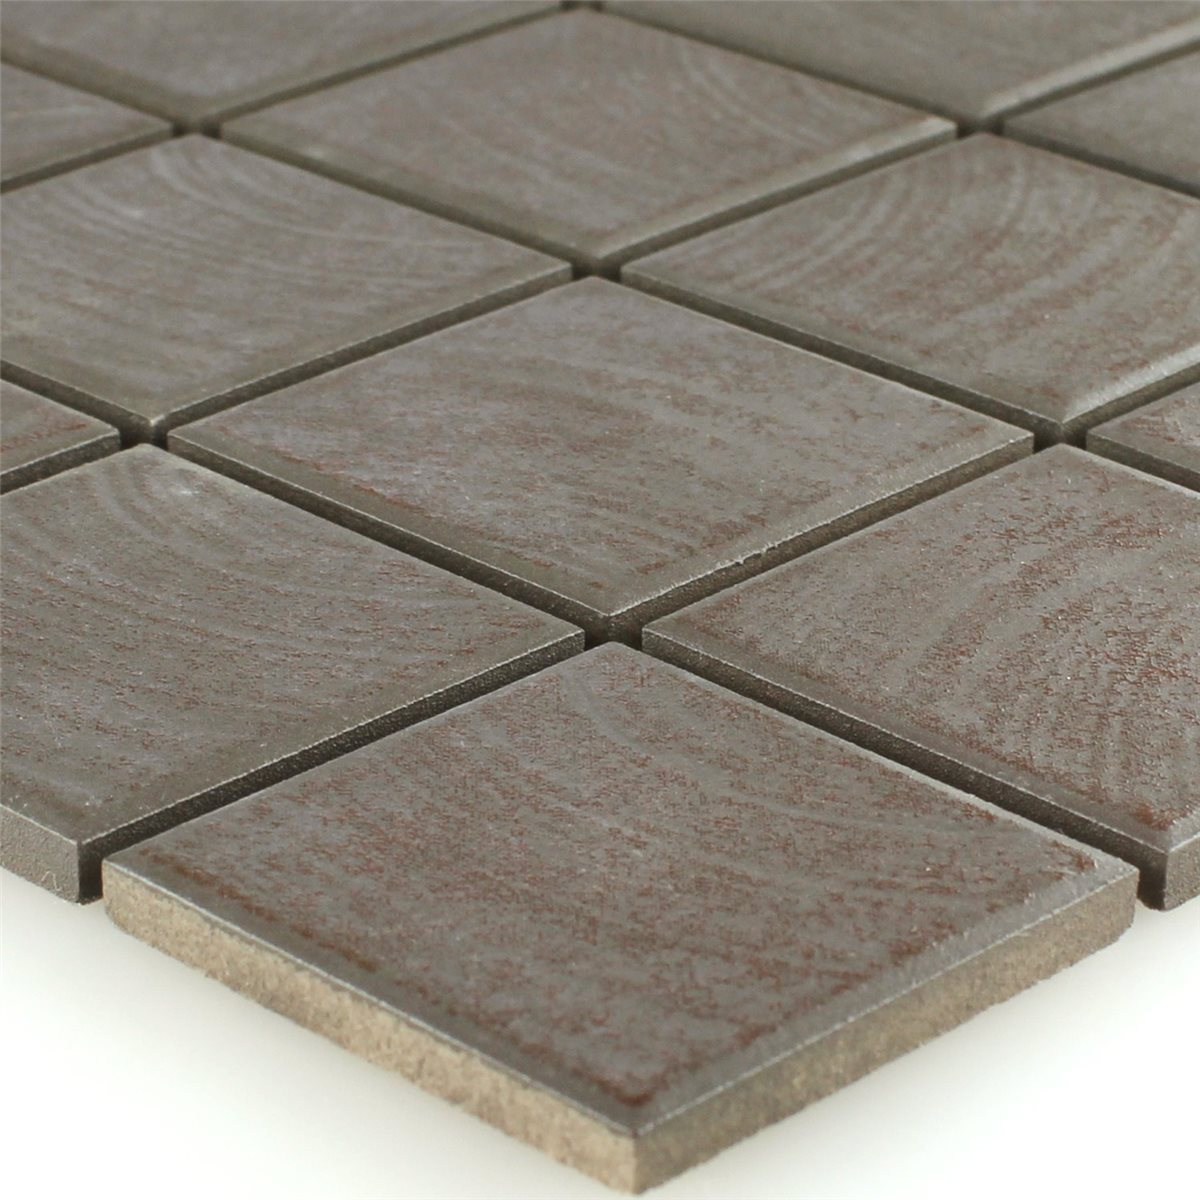 Ceramic Mosaic Tiles Non Slip Brown Structured Mosafil